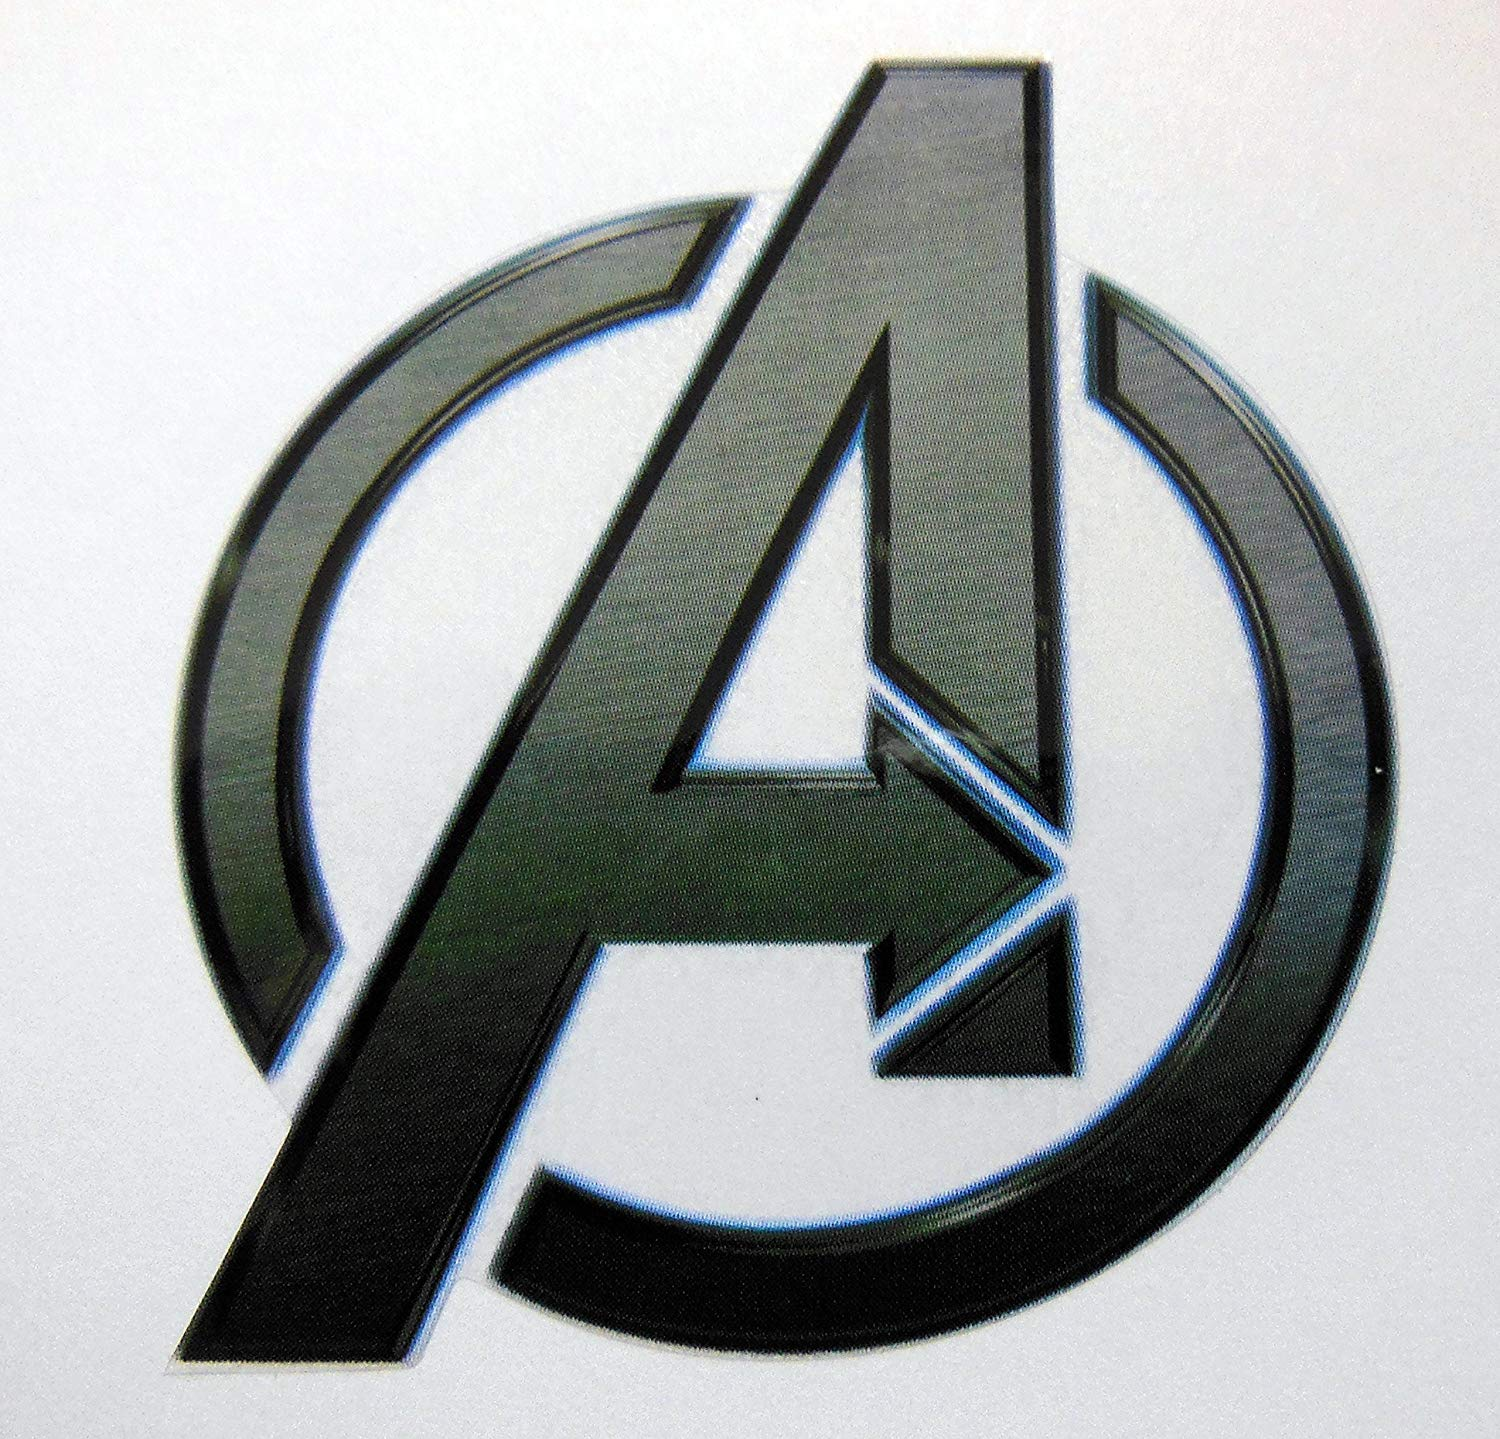 Amazon.com: Marvel Comics Avengers Logo Sticker/Logo/Emblem.